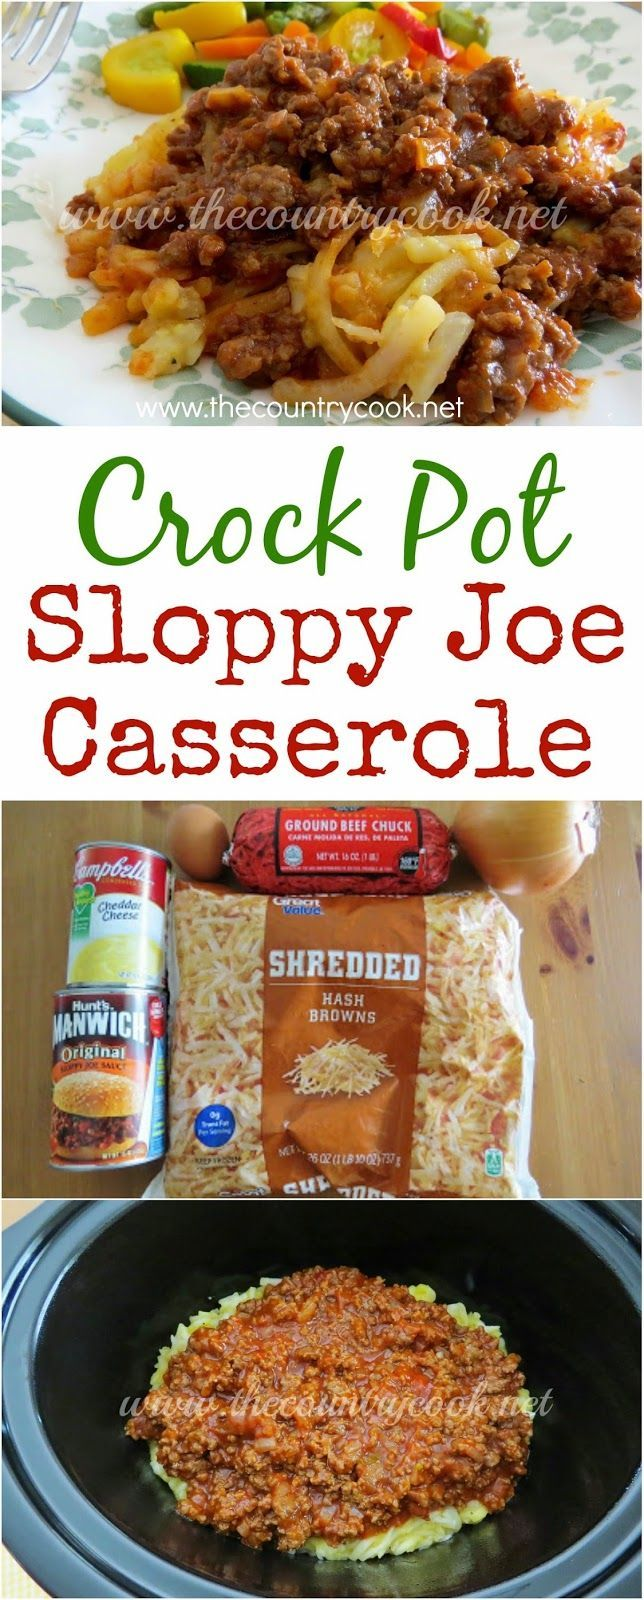 Crock Pot Sloppy Joe Casserole from The Country Cook. Layers of cheesy shredded hash browns, ground beef and sloppy joe sauce. It only takes minutes to throw it in the crock pot!